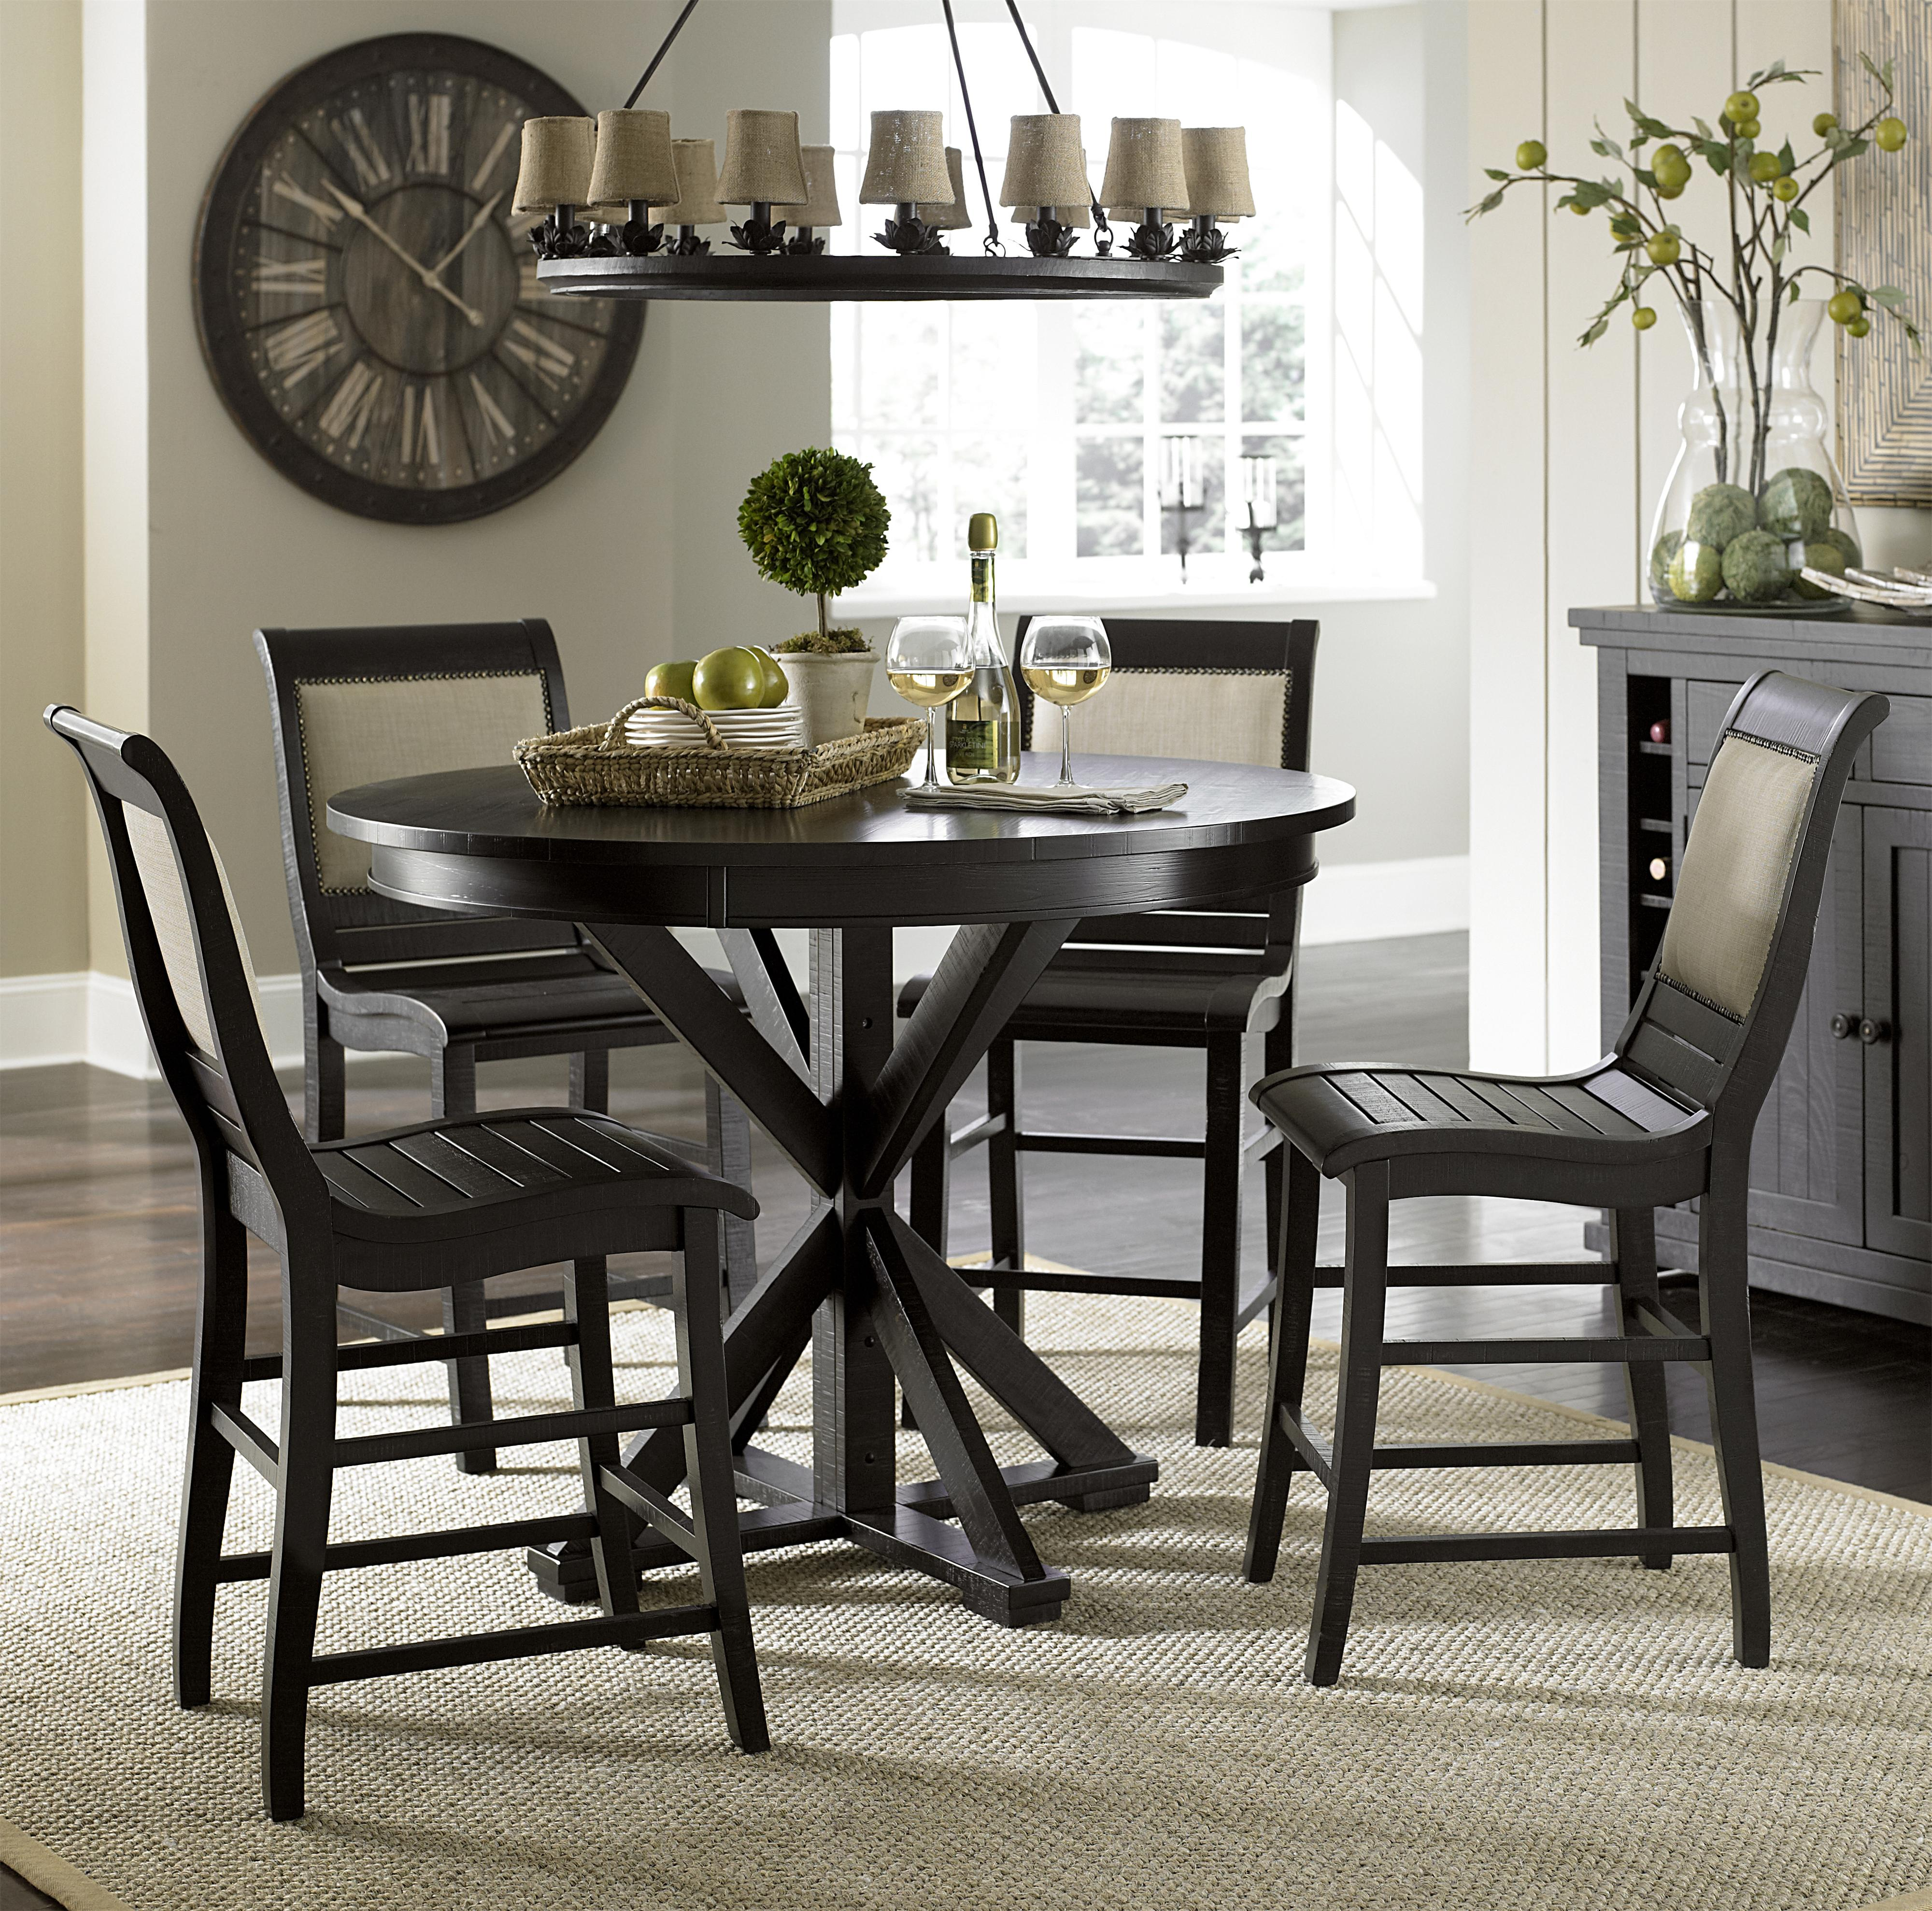 Progressive Furniture Willow Dining 5 Piece Round Counter